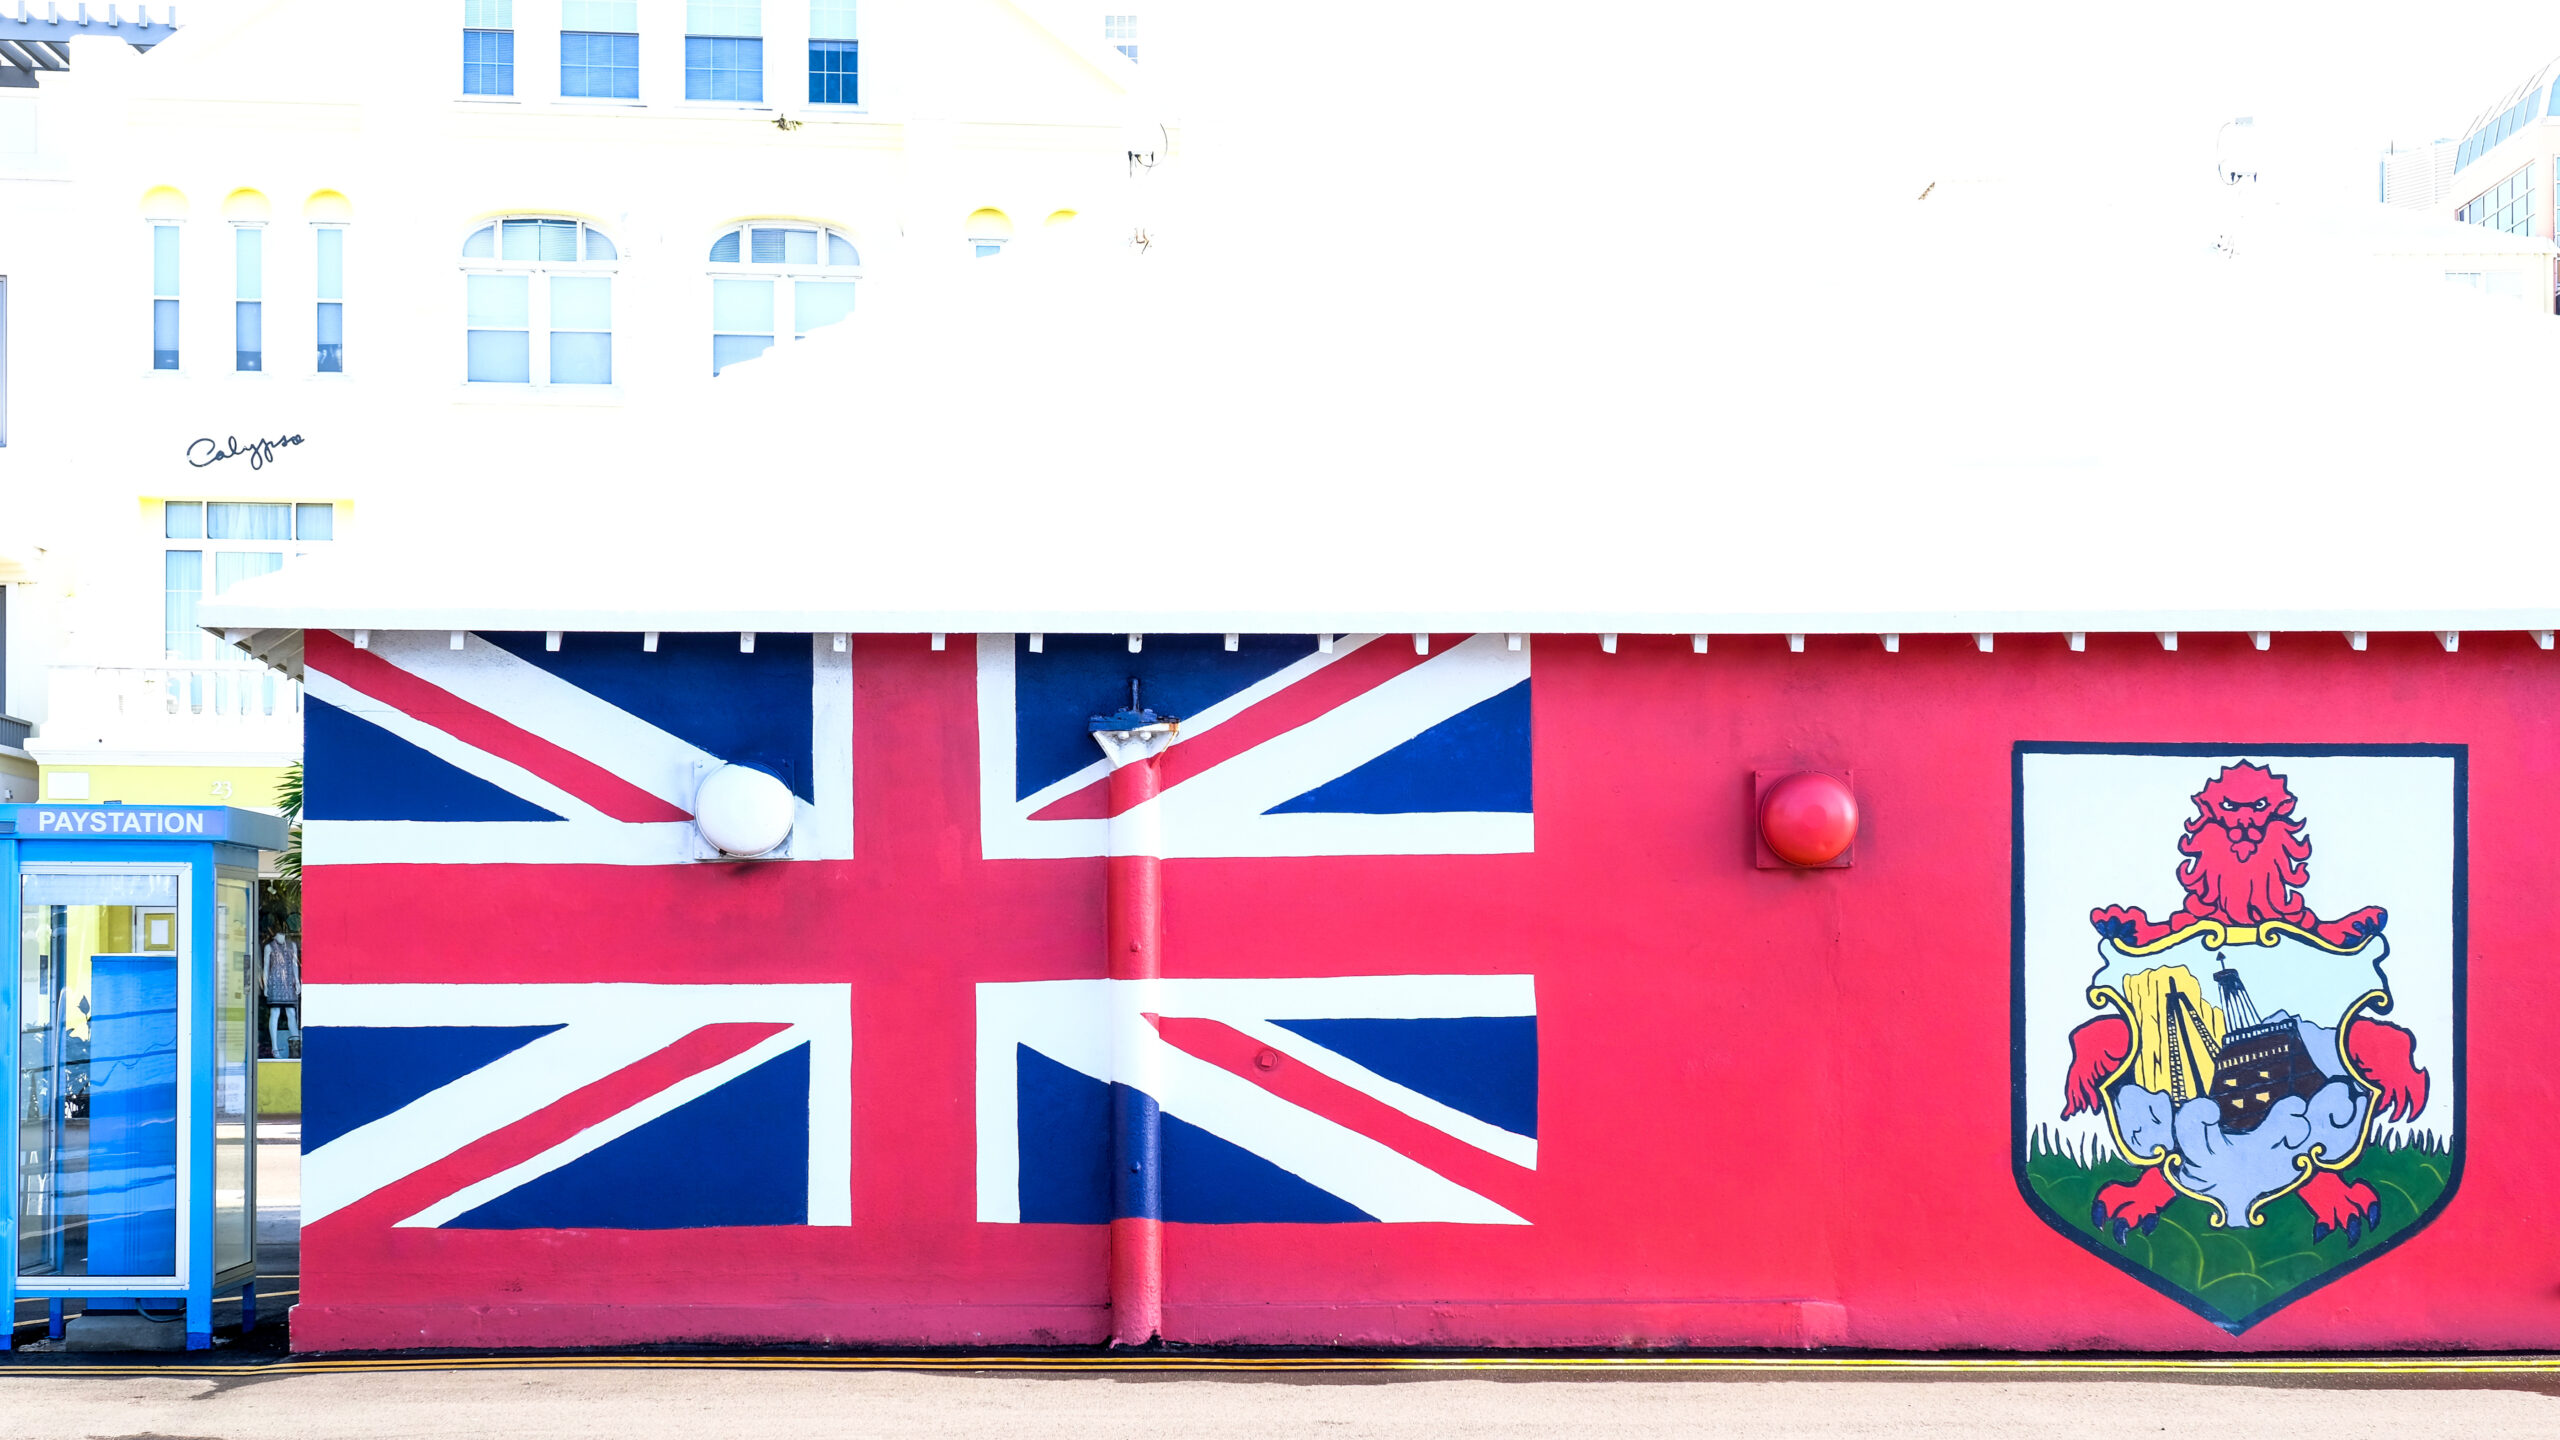 bermuda flag on the side of a building